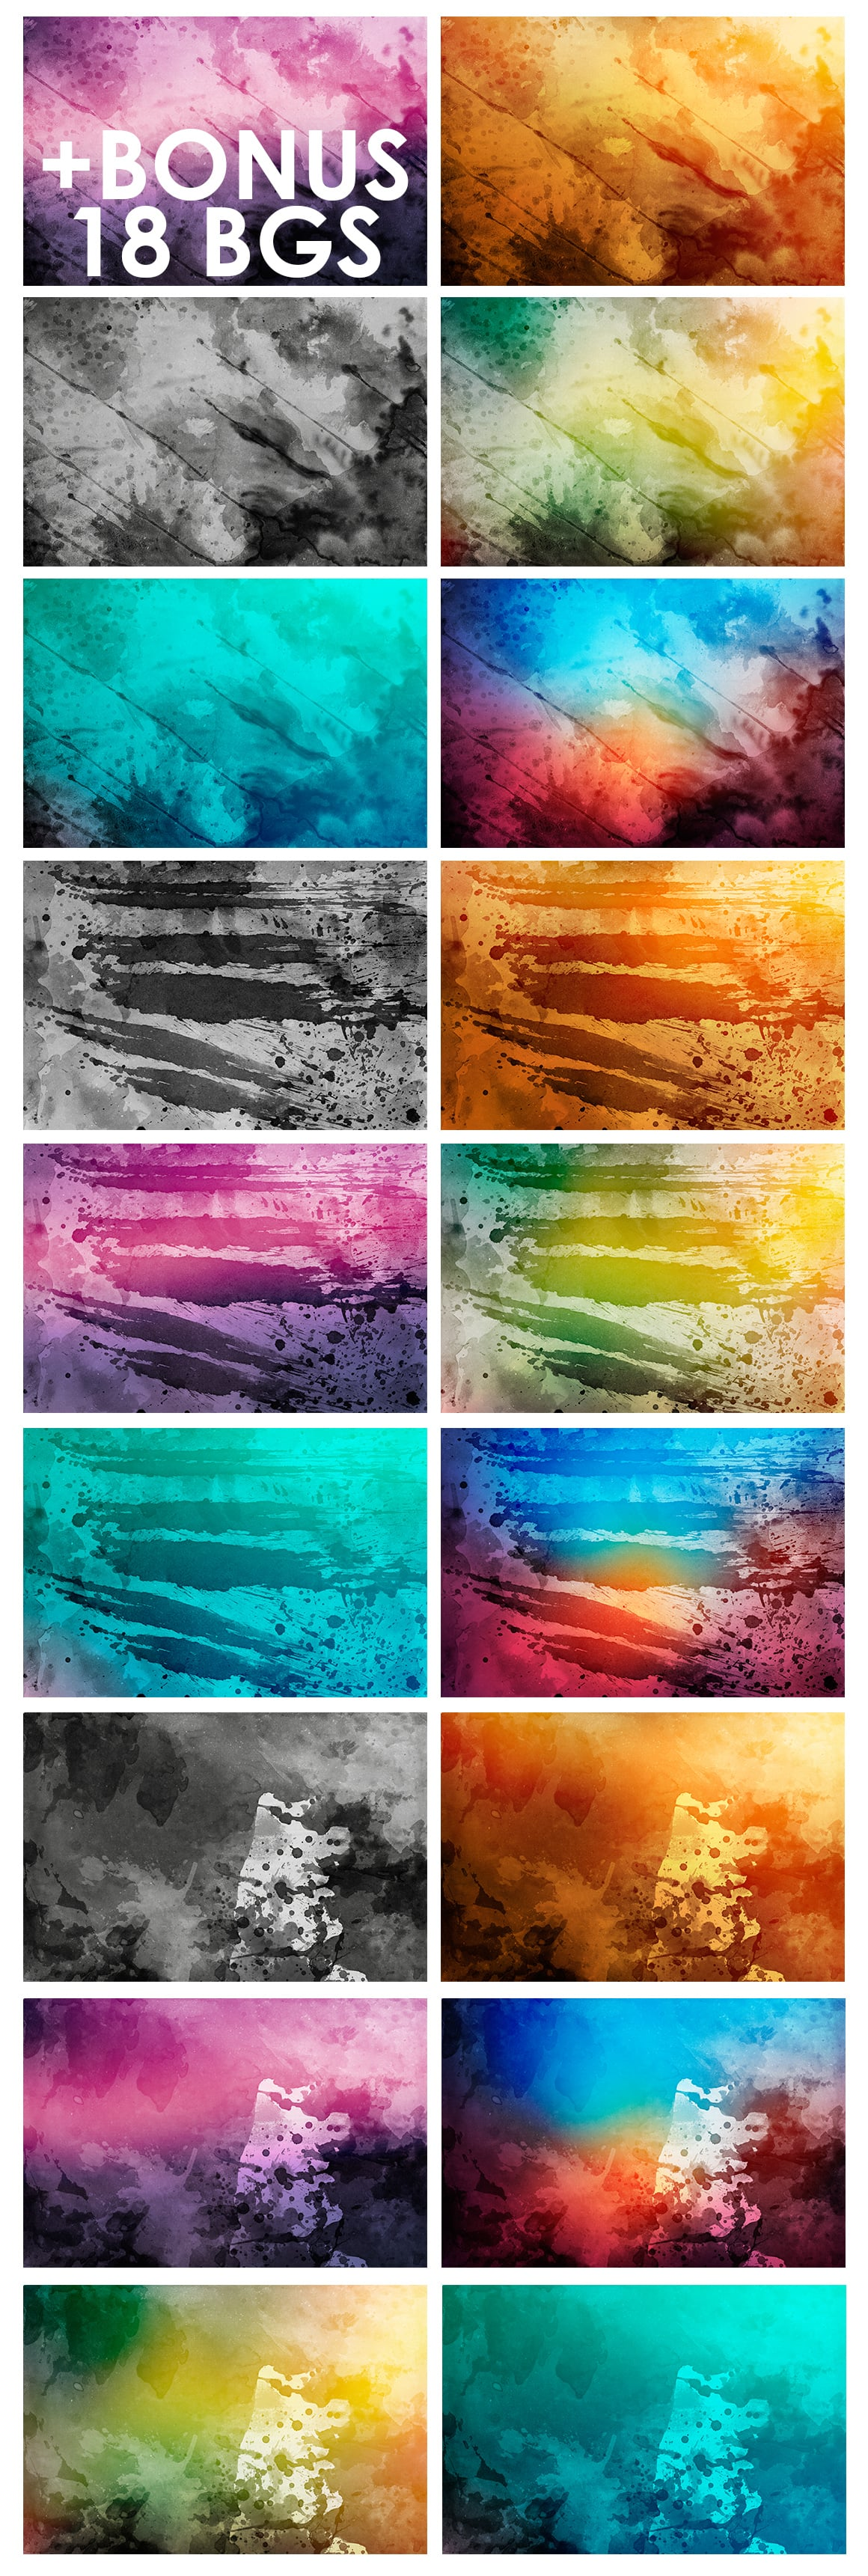 540+ Watercolor Backgrounds Bundle - 544 Items. Only $18! - watercolor backgrounds prev 3